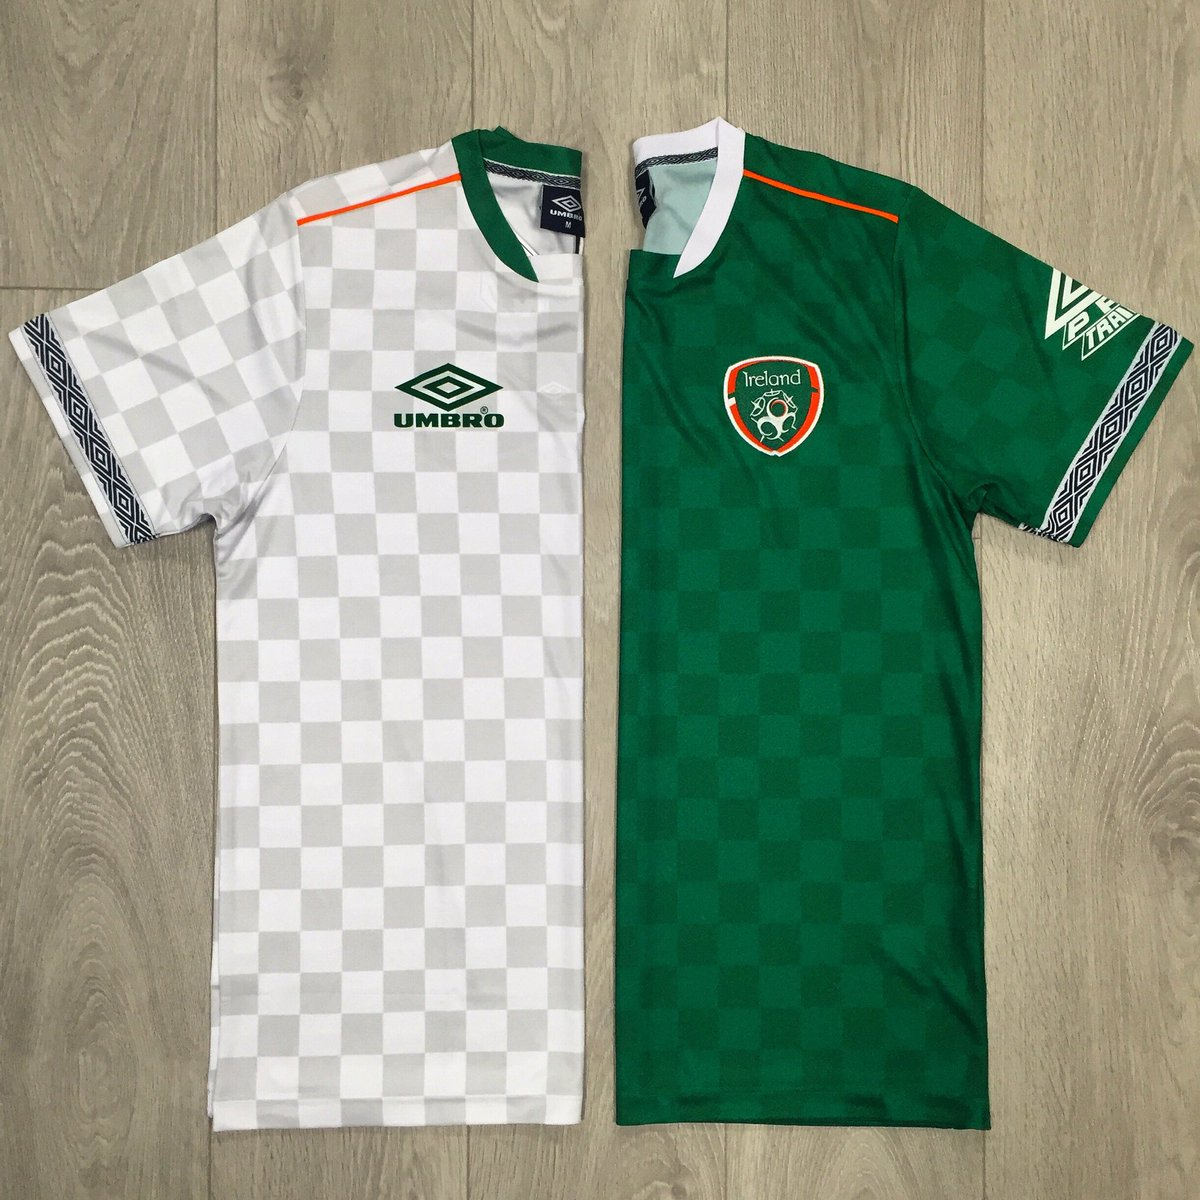 Umbro Ireland On Twitter These Fan Tastic Old Skool Umbro Pro